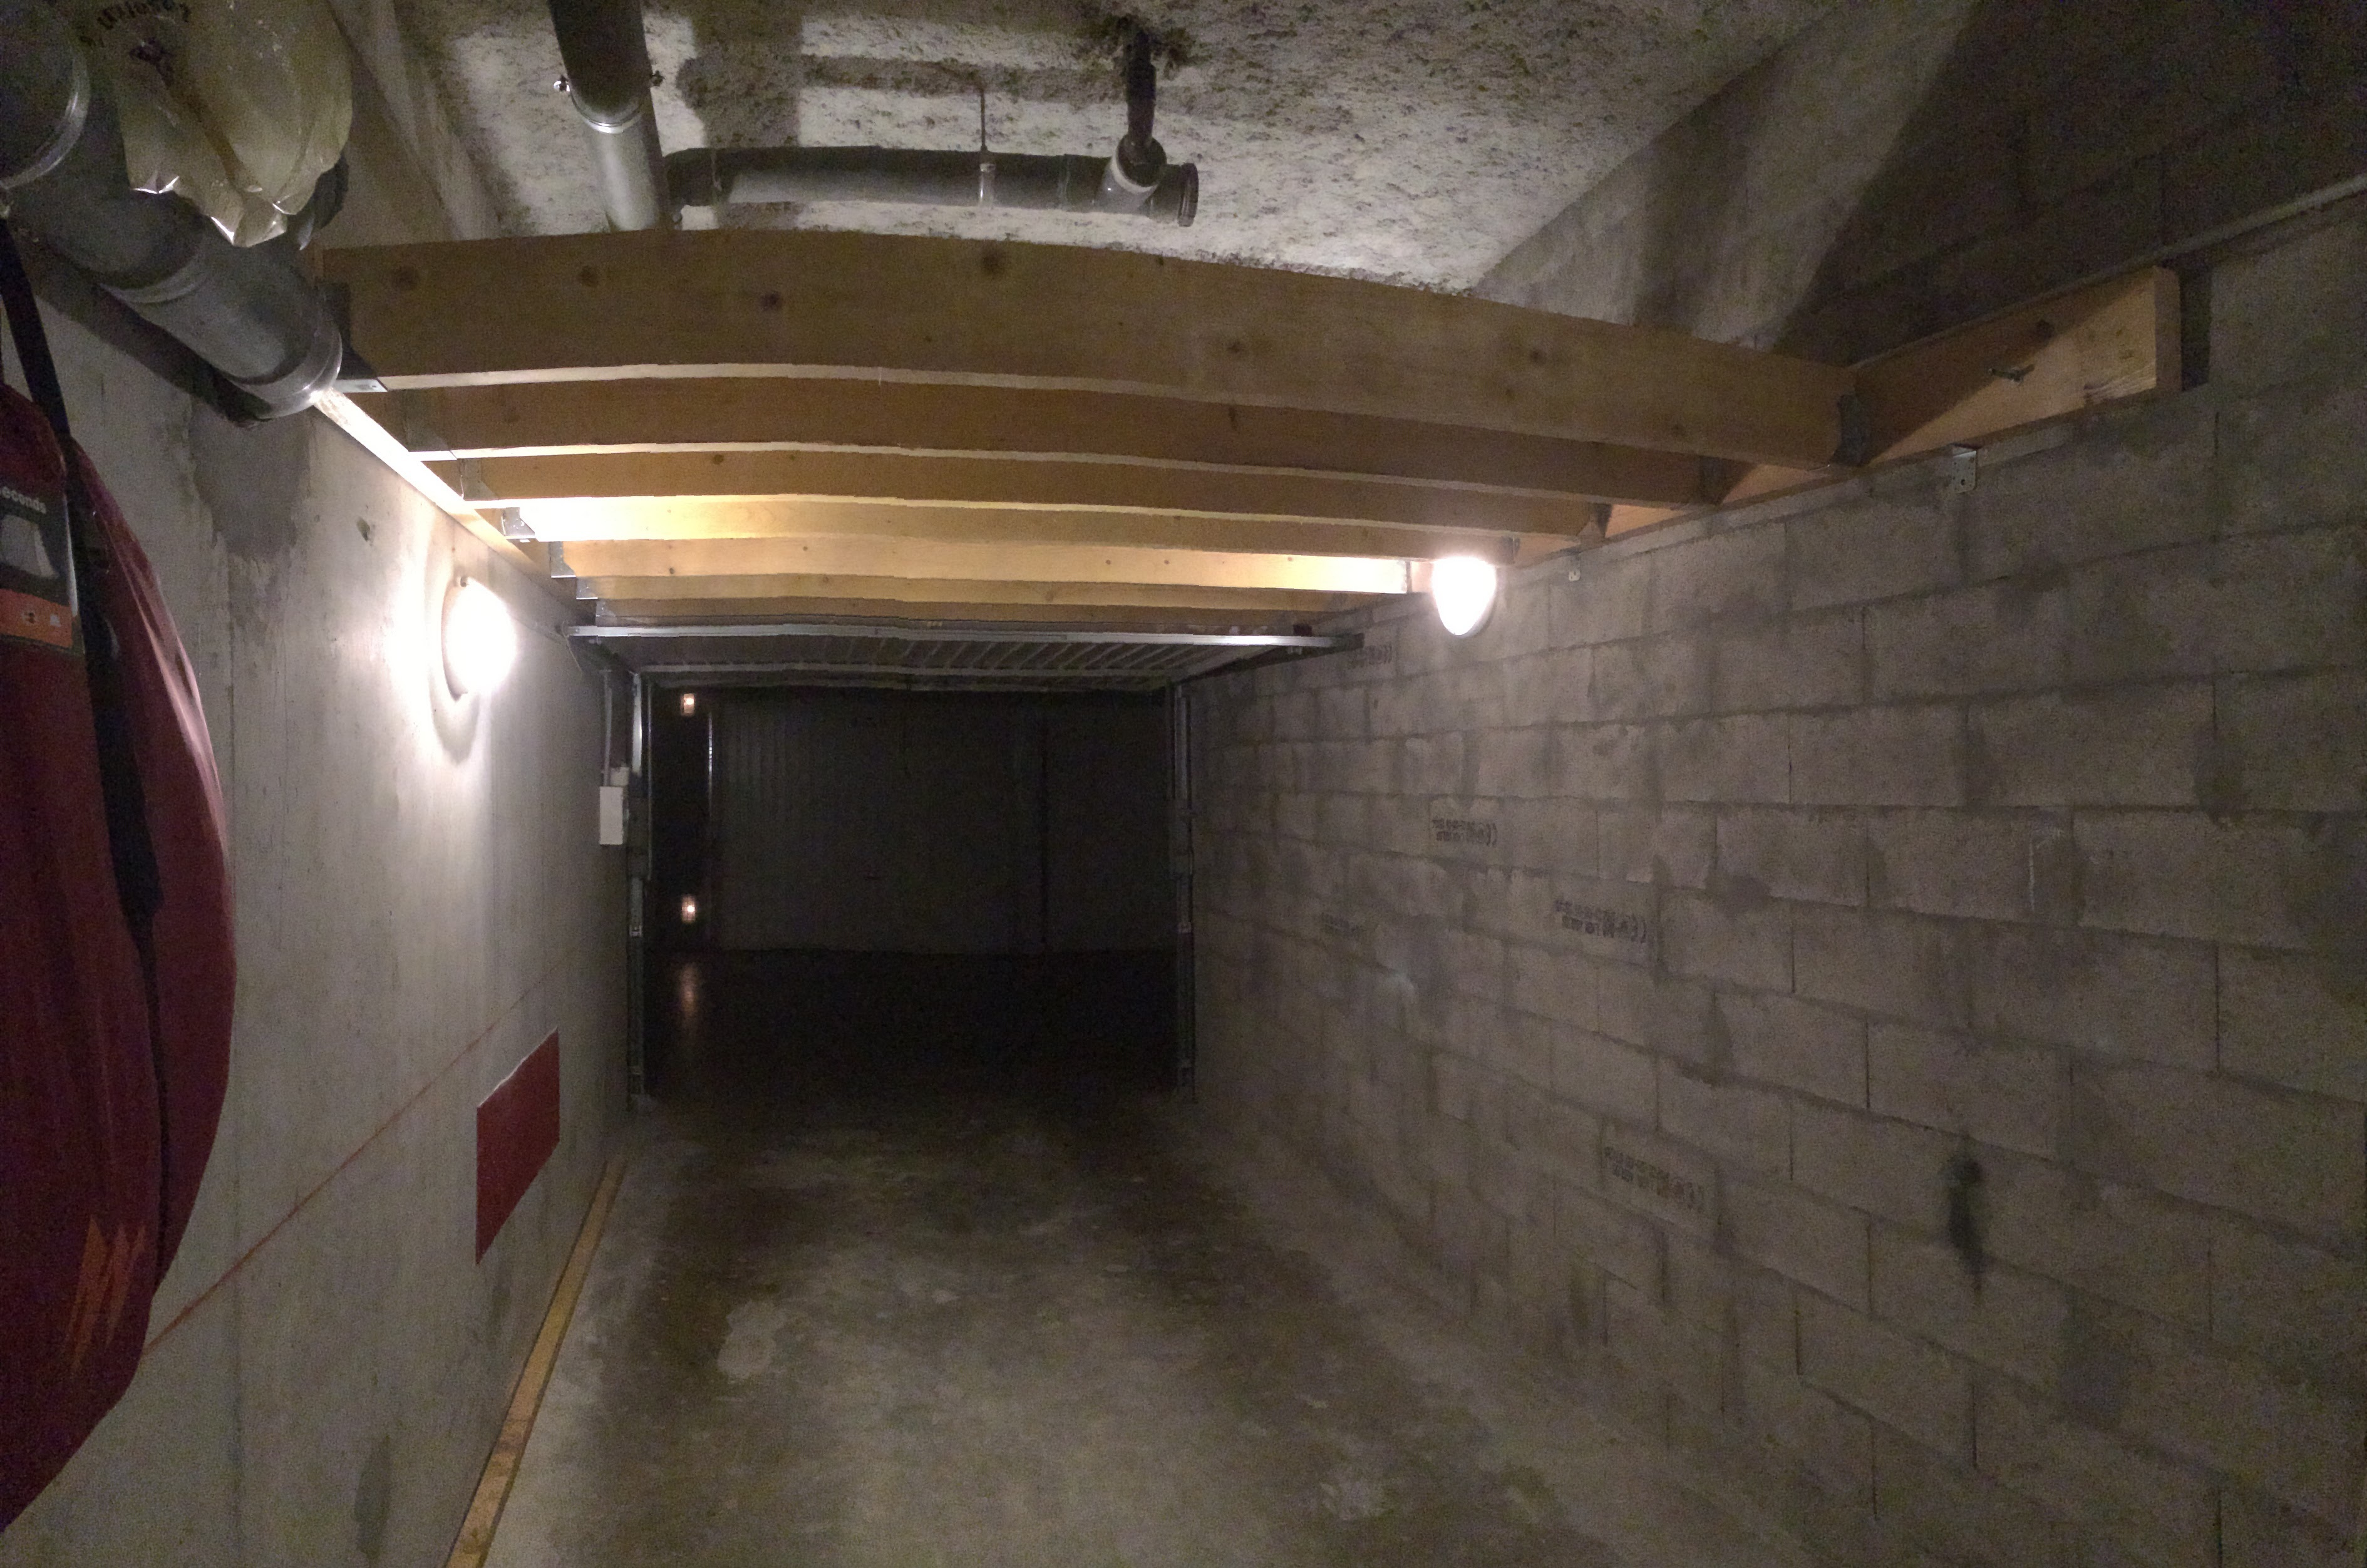 Articulated To Be D Under The Mezzanine When I Do Not Use It So That Can Still Park My Car Which Is Main Goal Of A Garage After